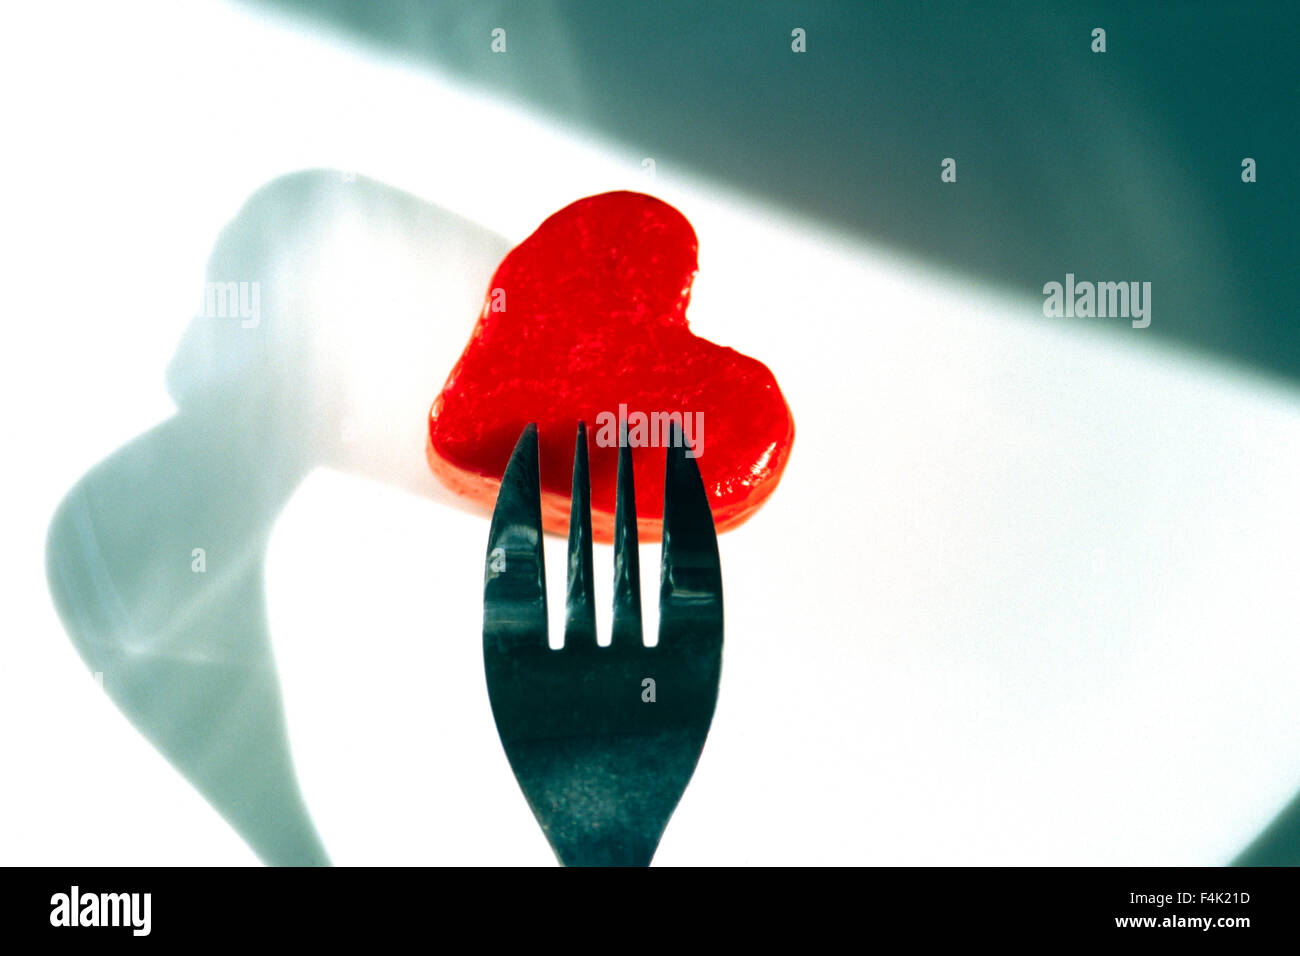 Fork Carving Heart Shape - Stock Image